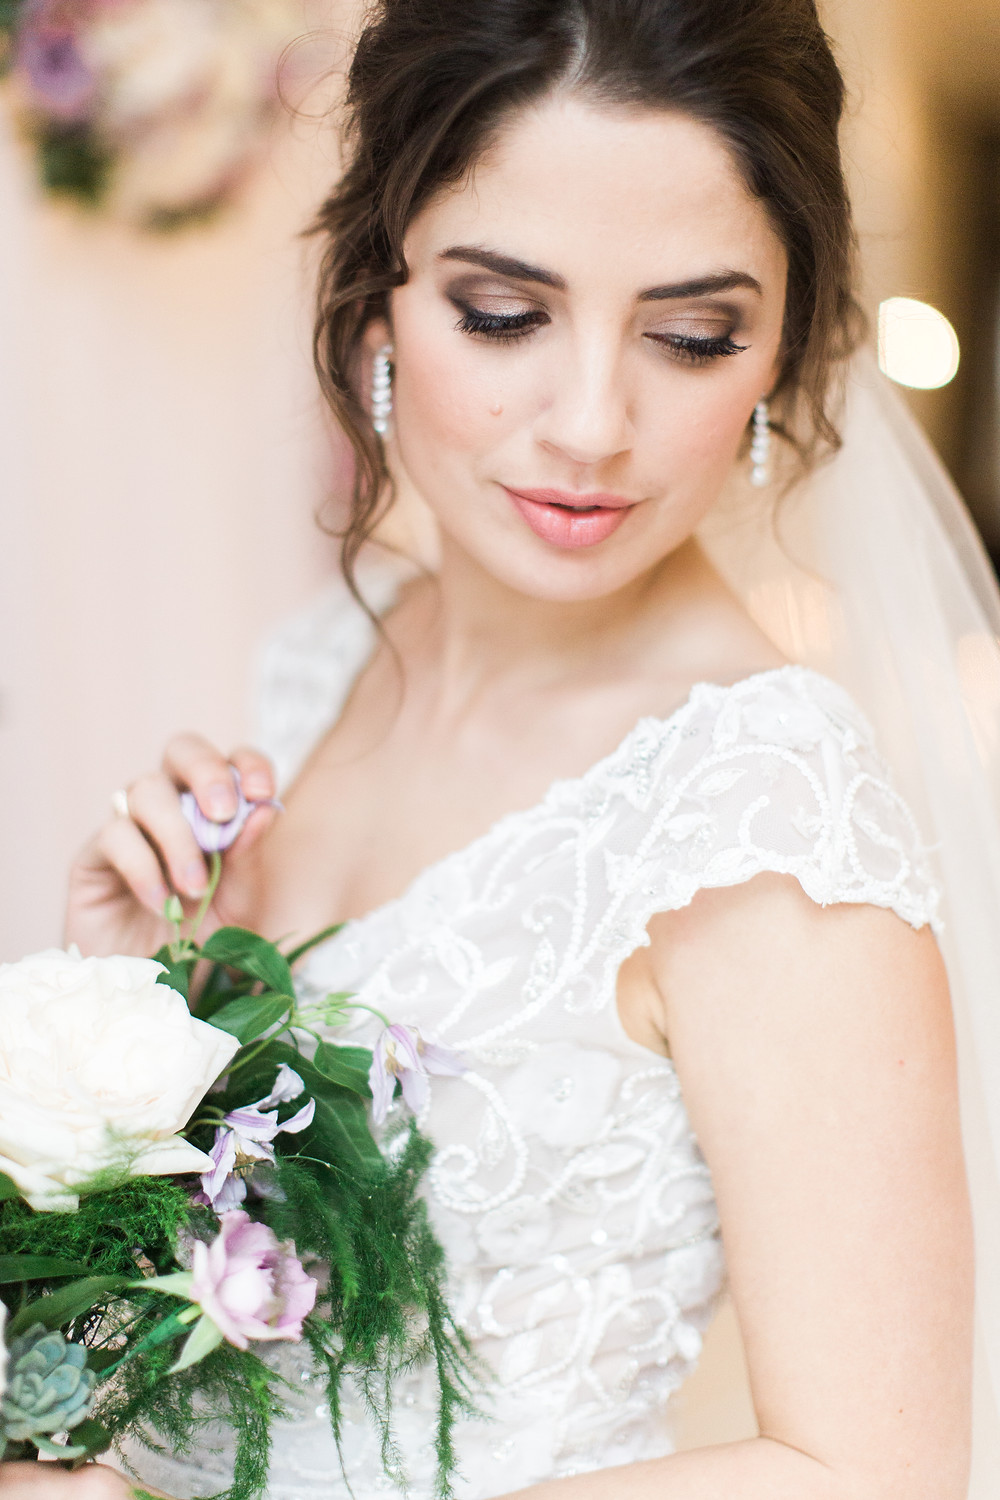 Enhancing Natural Makeup for Your Wedding Day| Bridal Beauty Tips